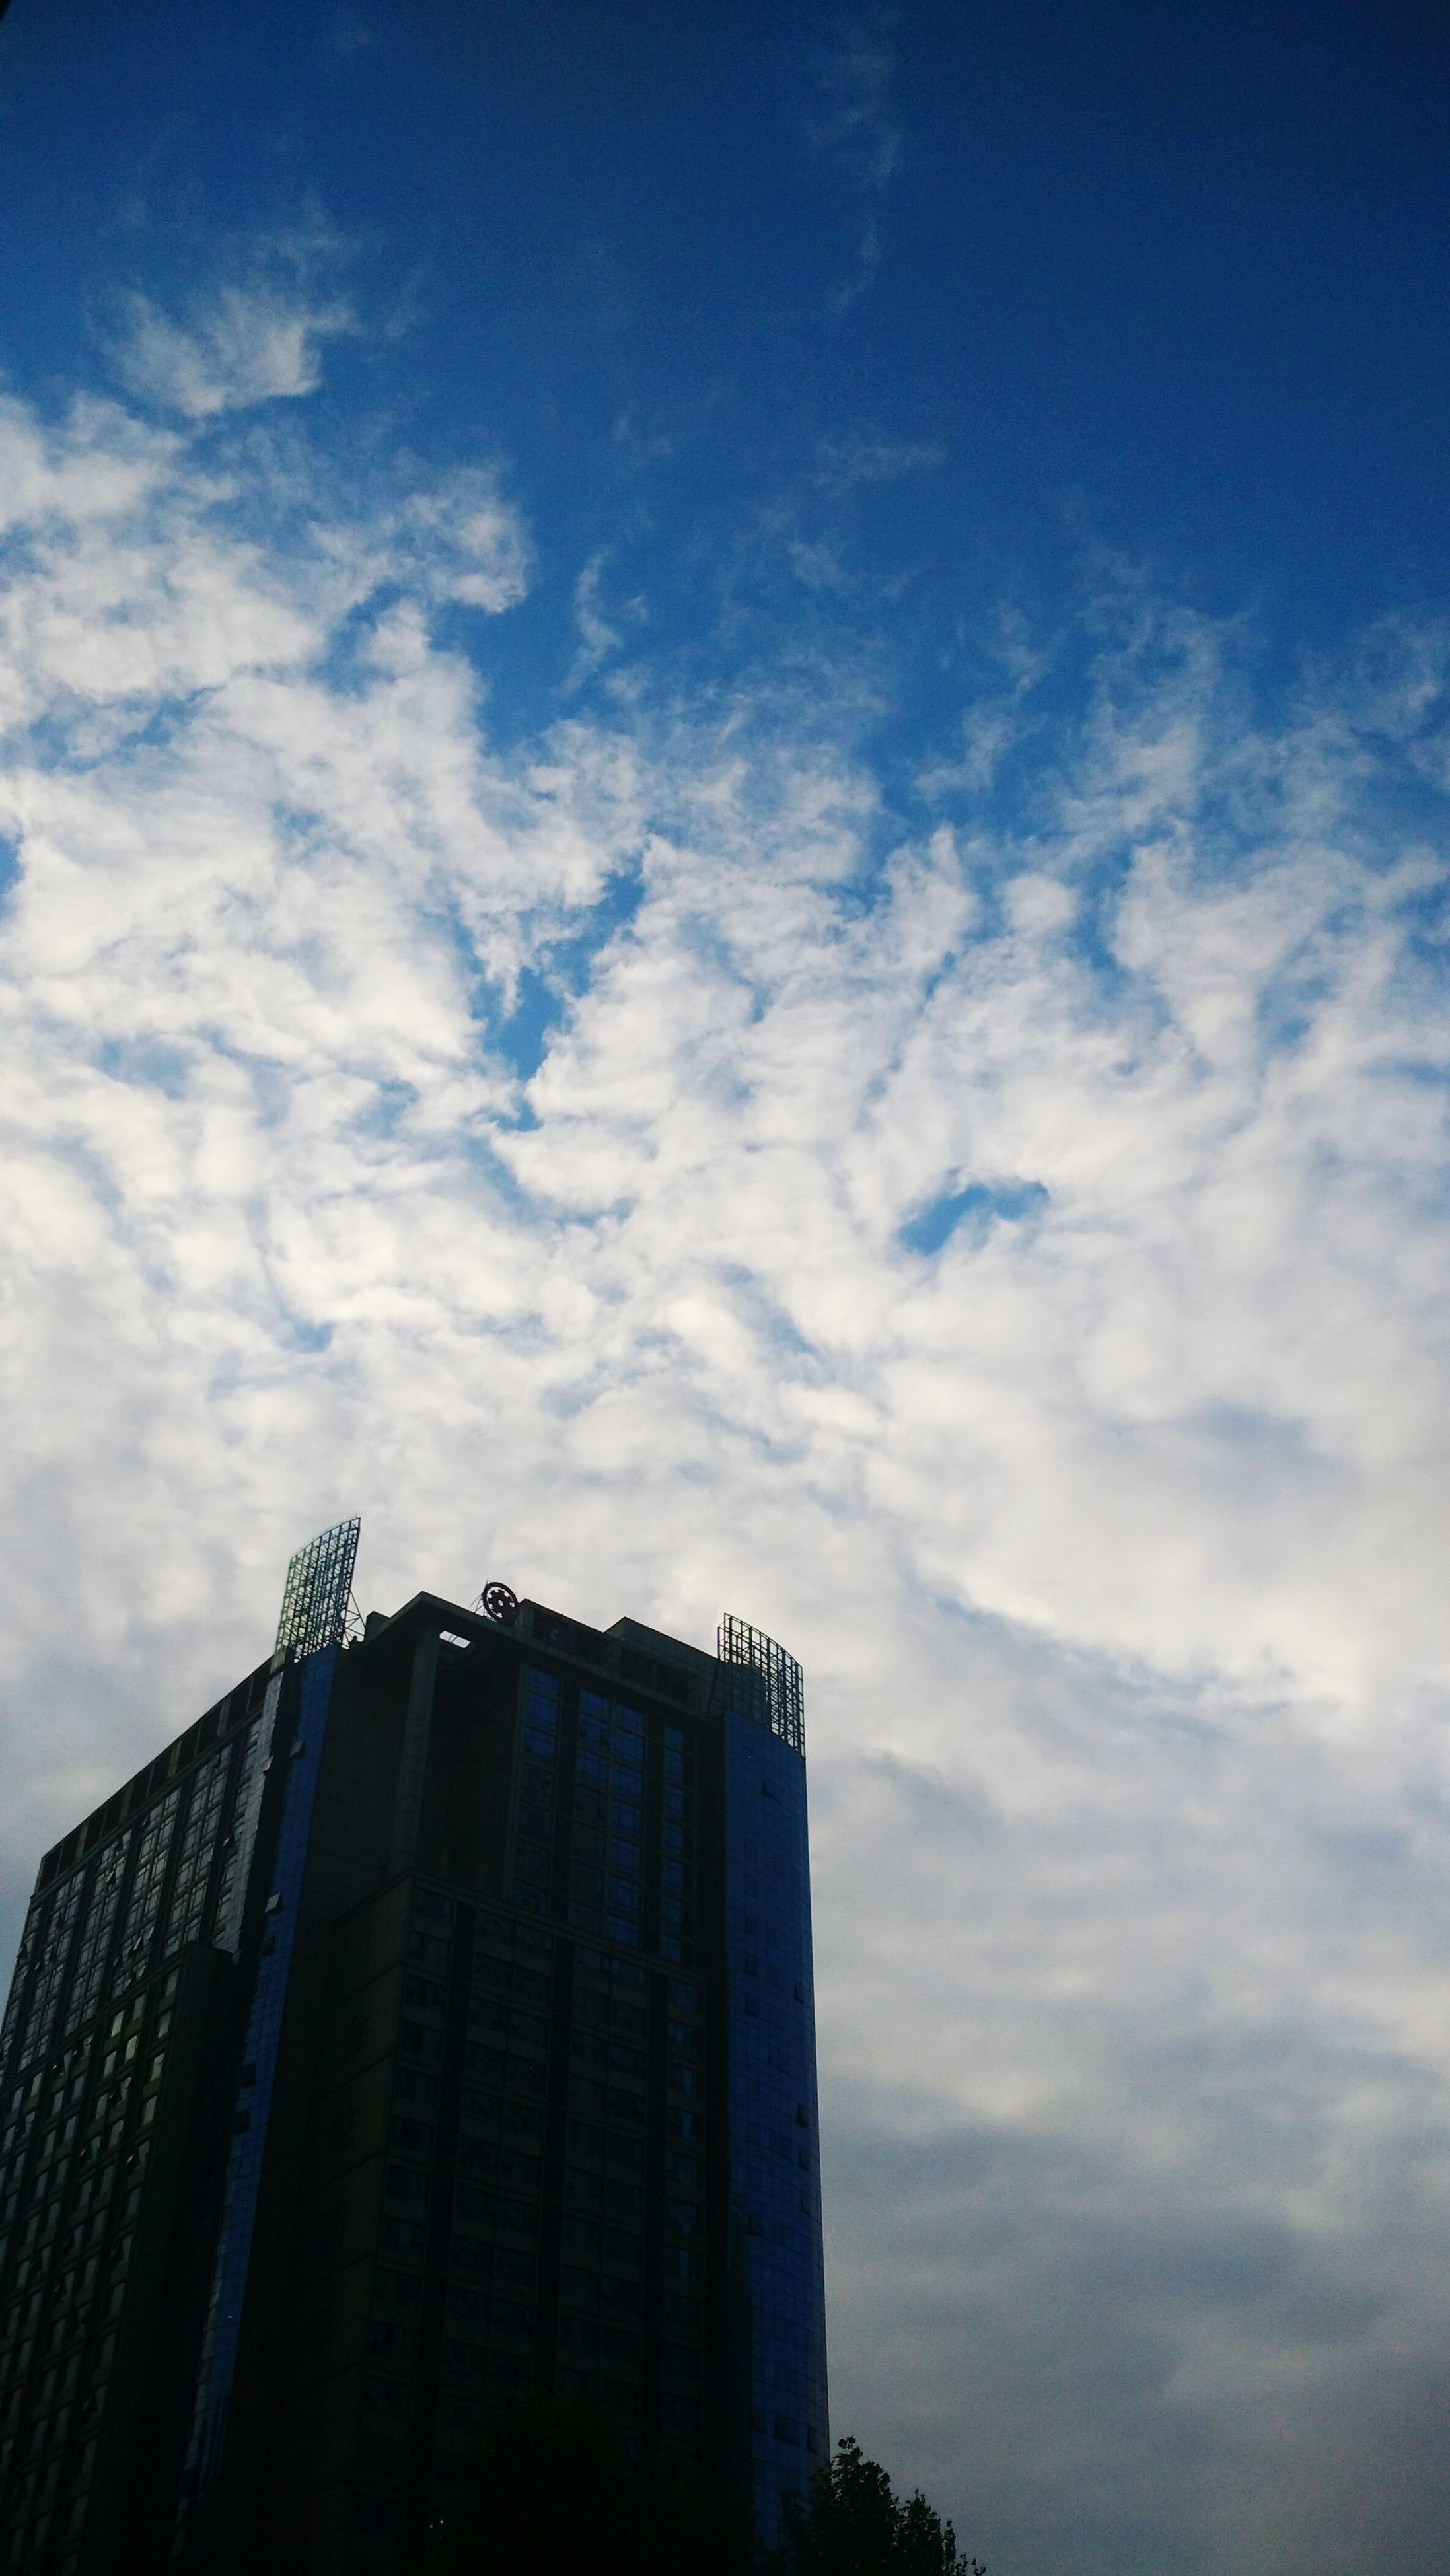 building exterior, architecture, built structure, low angle view, sky, city, skyscraper, office building, modern, tall - high, tower, cloud - sky, building, cloud, blue, cloudy, outdoors, tall, day, no people